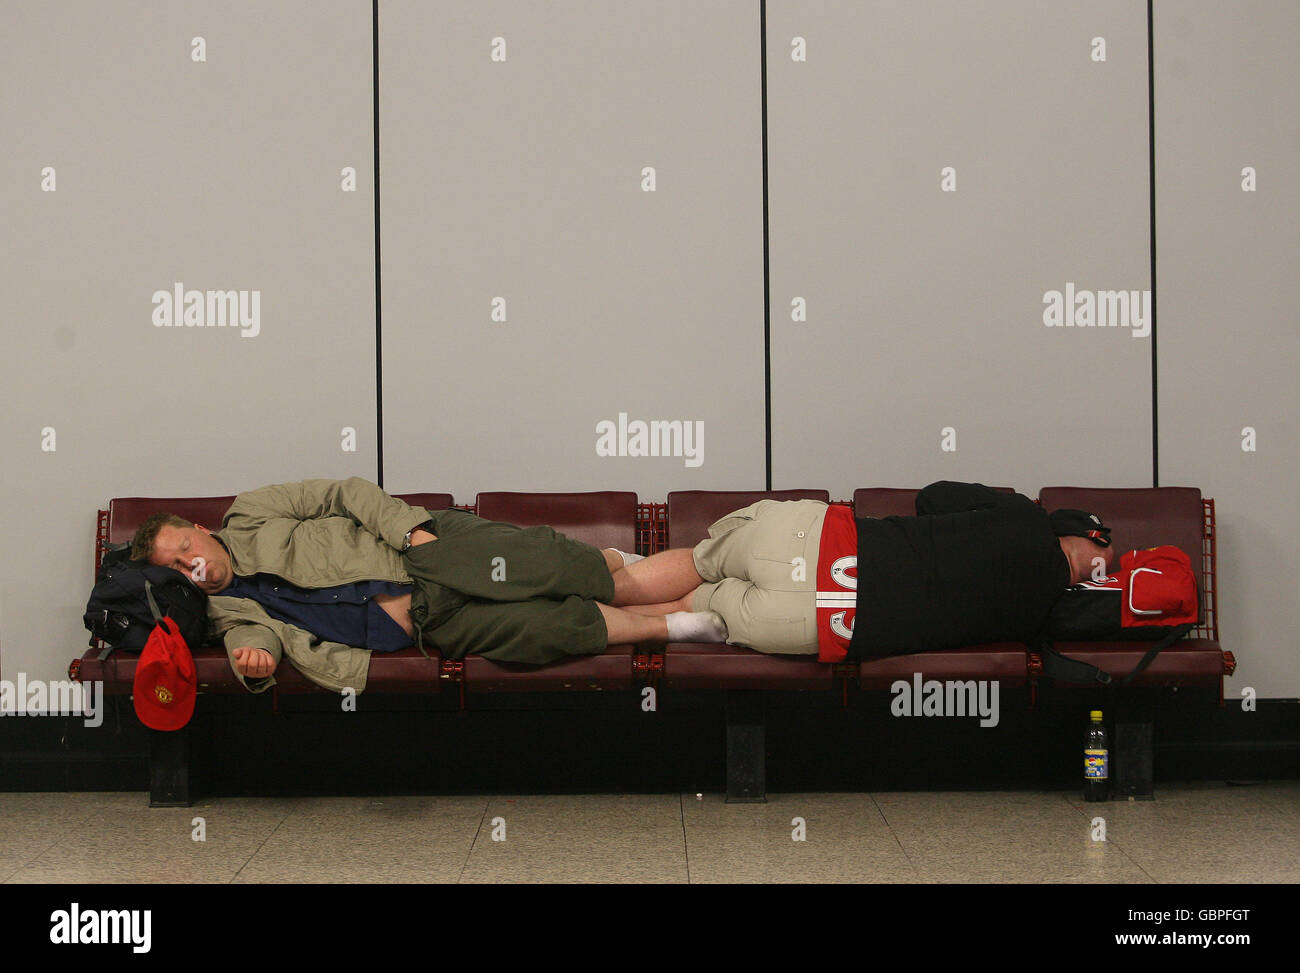 Soccer - UEFA Champions League - Final - Manchester United Fans Return Home- Rome Fiumicino Airport - Stock Image